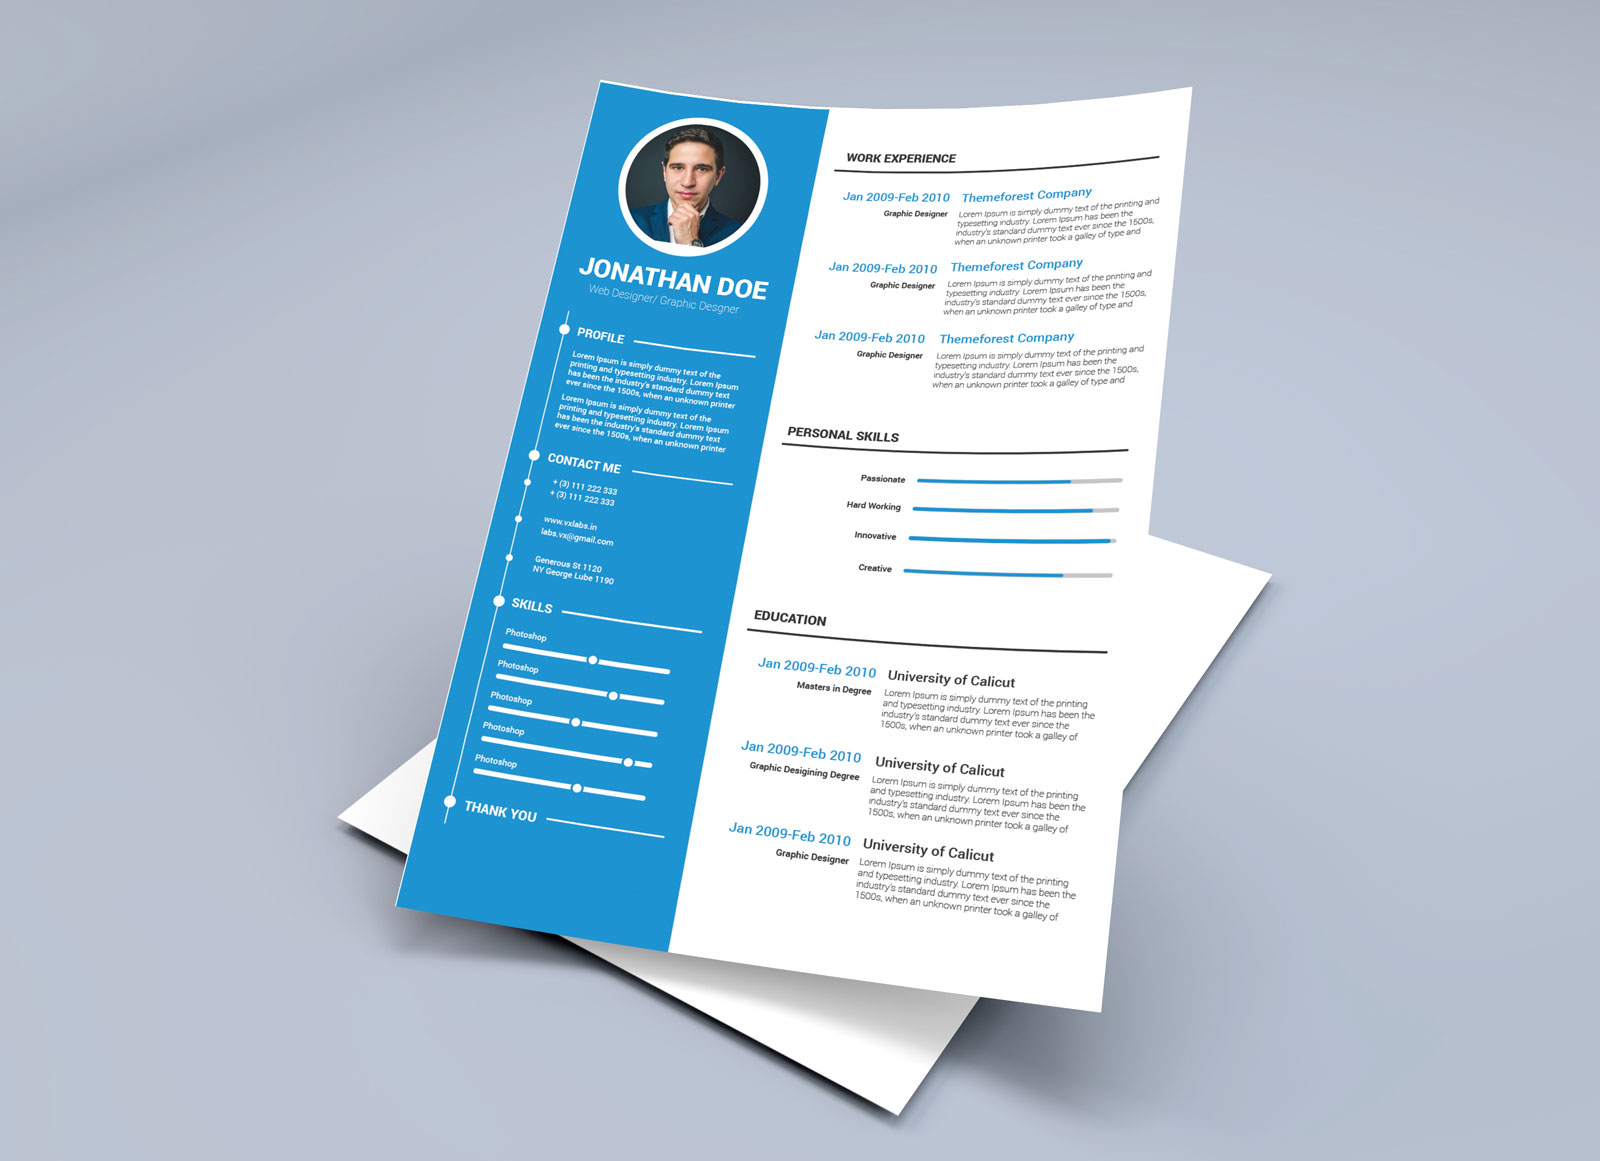 free resume template in illustrator ai  u0026 word docx format